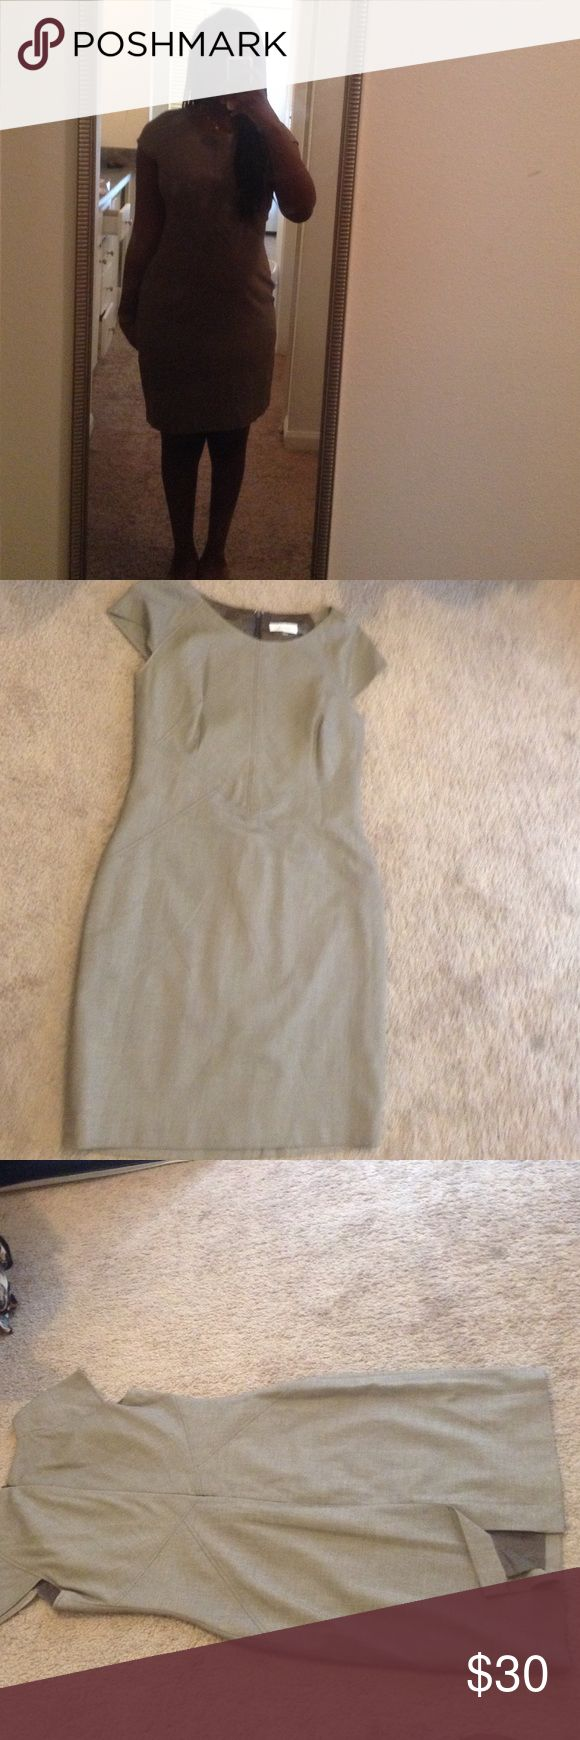 NWOT Calvin Klein Dress This dress has never been worn before, the tag is just missing. This dress is perfect for formal events, church, or even business meetings. It's a neutral color that is appropriate for any occasion really. Calvin Klein Dresses Midi